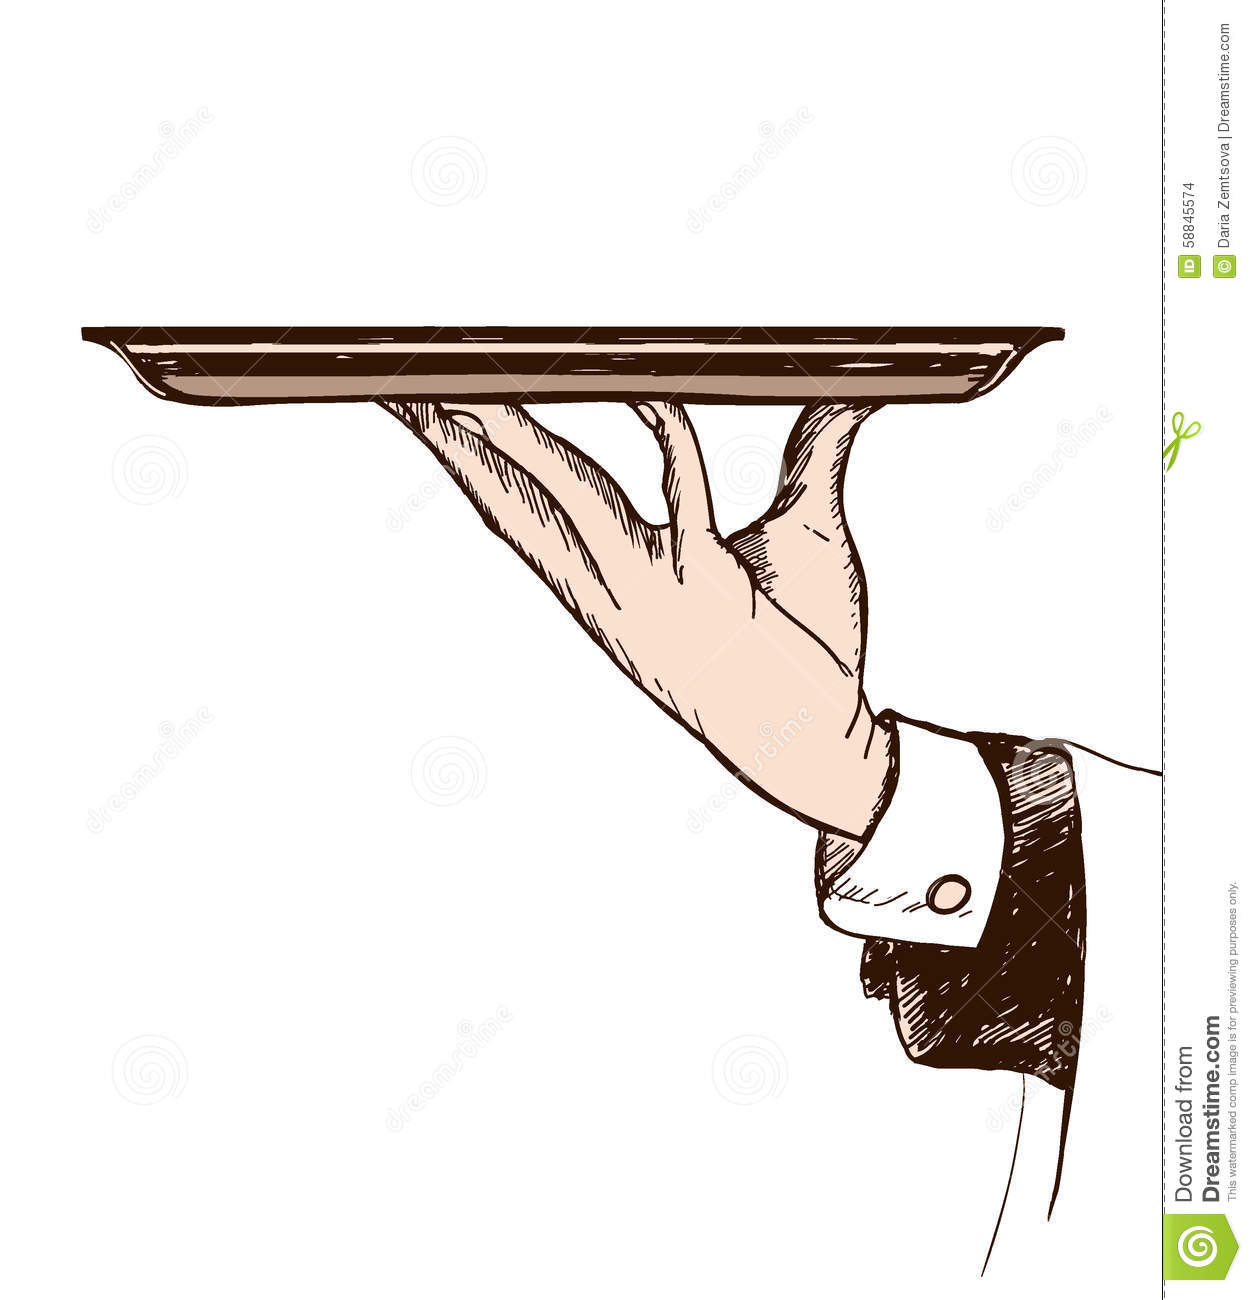 Illustration Of Waiters Hand Holding A Tray Stock Vector ...